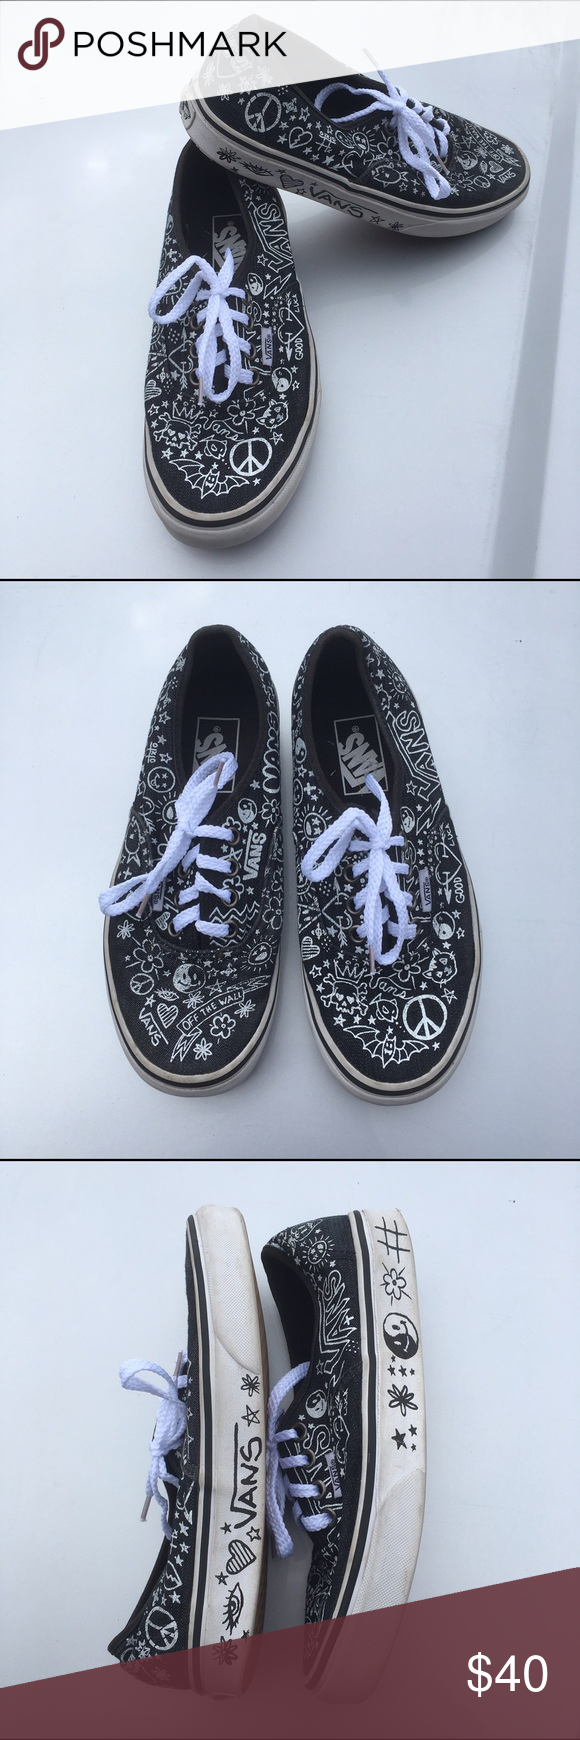 e7bb03f2da Doodle Vans size 6 Black and white Vans sneakers! Women s size 6 Fun  doodle   print with factory-drawn doodles on the sides as well!